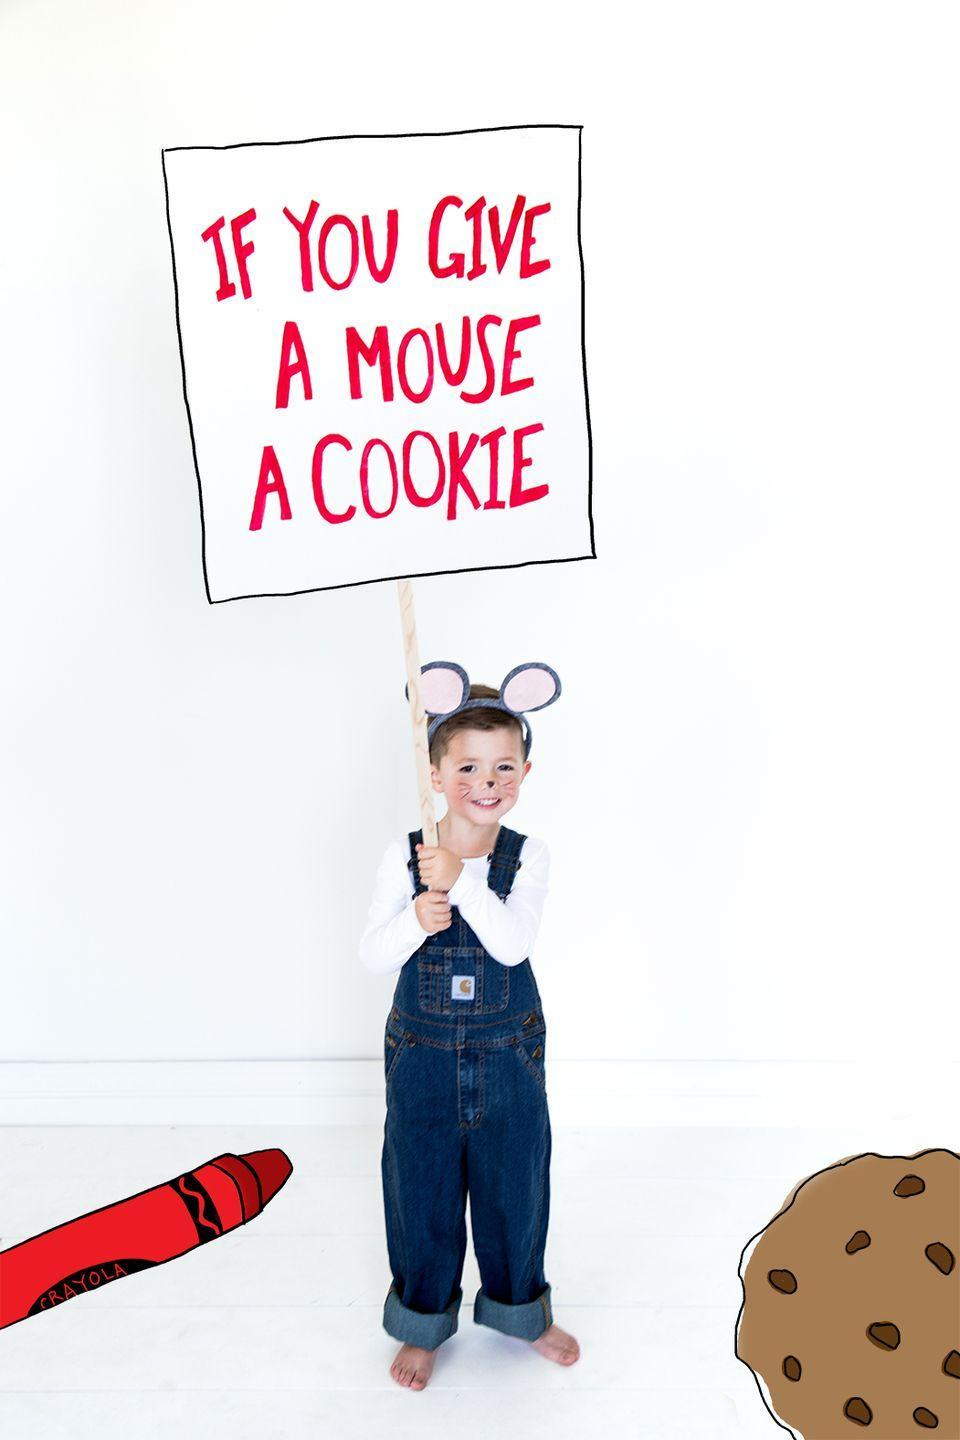 """<p>Don't settle for just any old mouse—turn your toddler into this famed children's book character with a sign and blue overalls. You can use a cookie as a prop too, but be wary of sugar overload on top of the Halloween candy...and know that it probably won't last long.</p><p><strong>Get the tutorial at <a href=""""https://thehousethatlarsbuilt.com/2015/10/if-you-give-a-mouse-a-cookie-costumes.html/#more-16309"""" rel=""""nofollow noopener"""" target=""""_blank"""" data-ylk=""""slk:The House That Lars Built"""" class=""""link rapid-noclick-resp"""">The House That Lars Built</a>. </strong> </p>"""